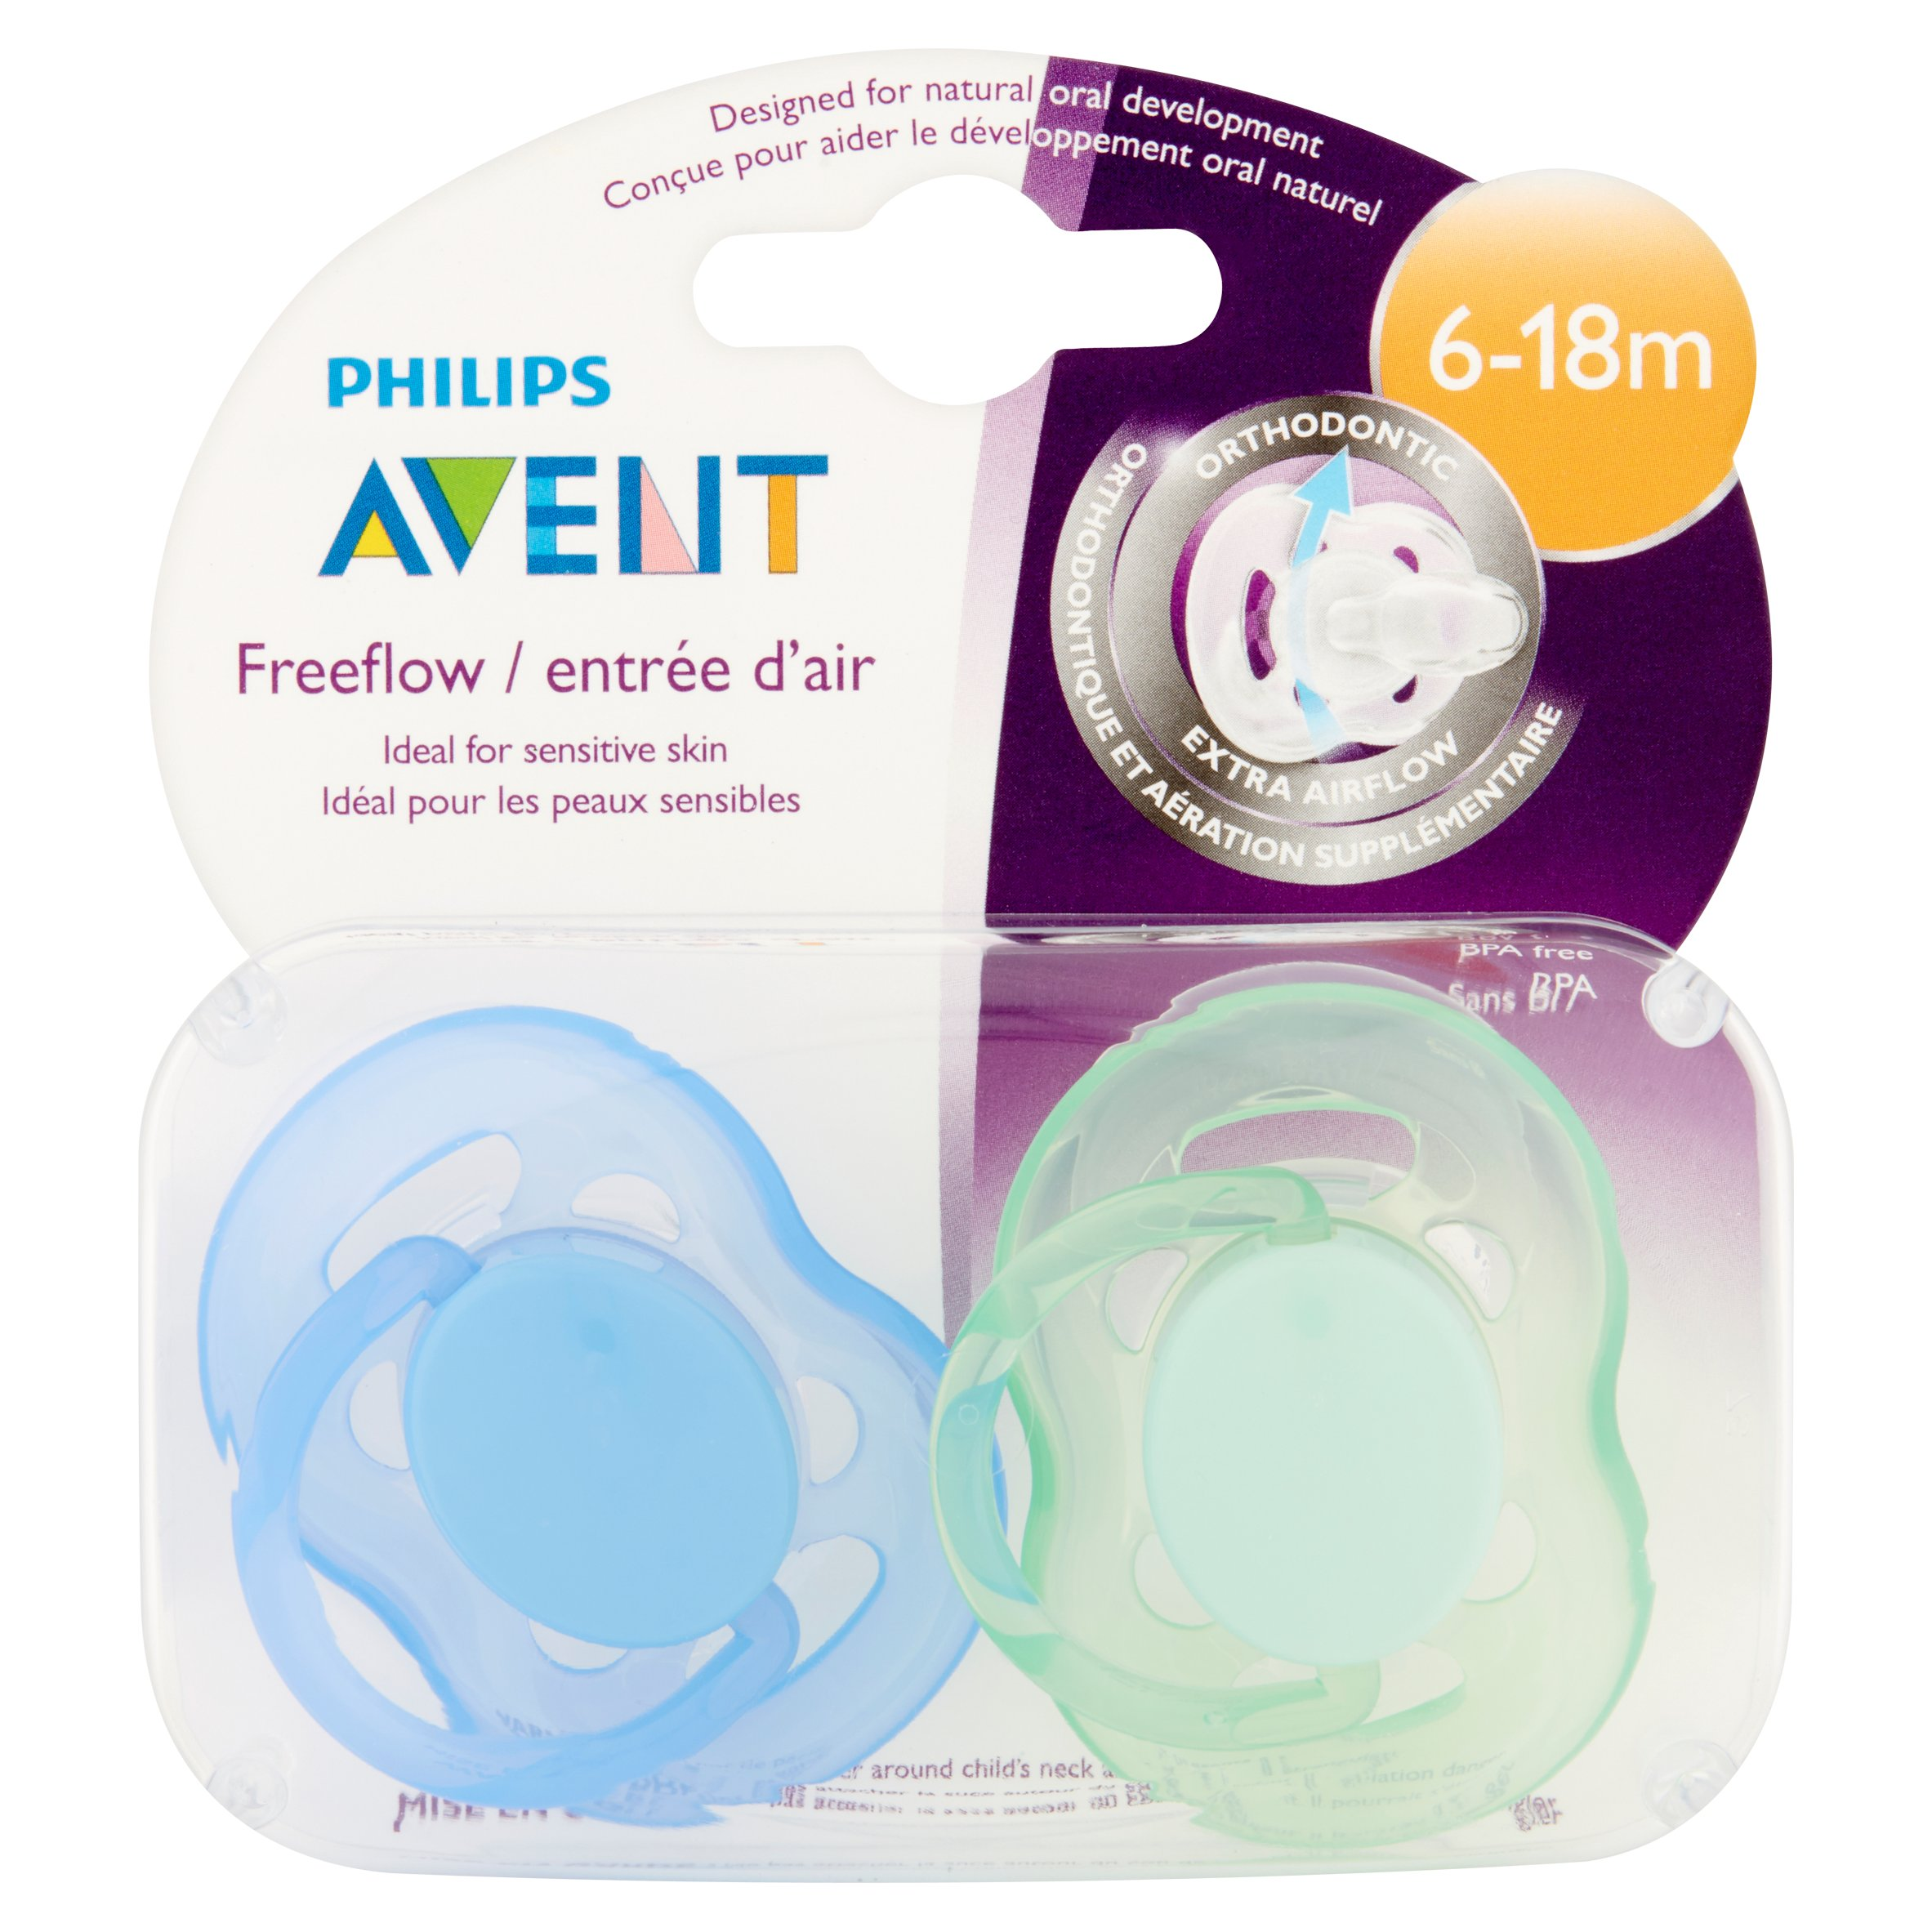 Philips Avent Freeflow Pacifier, 6-18 Months - 2 Counts